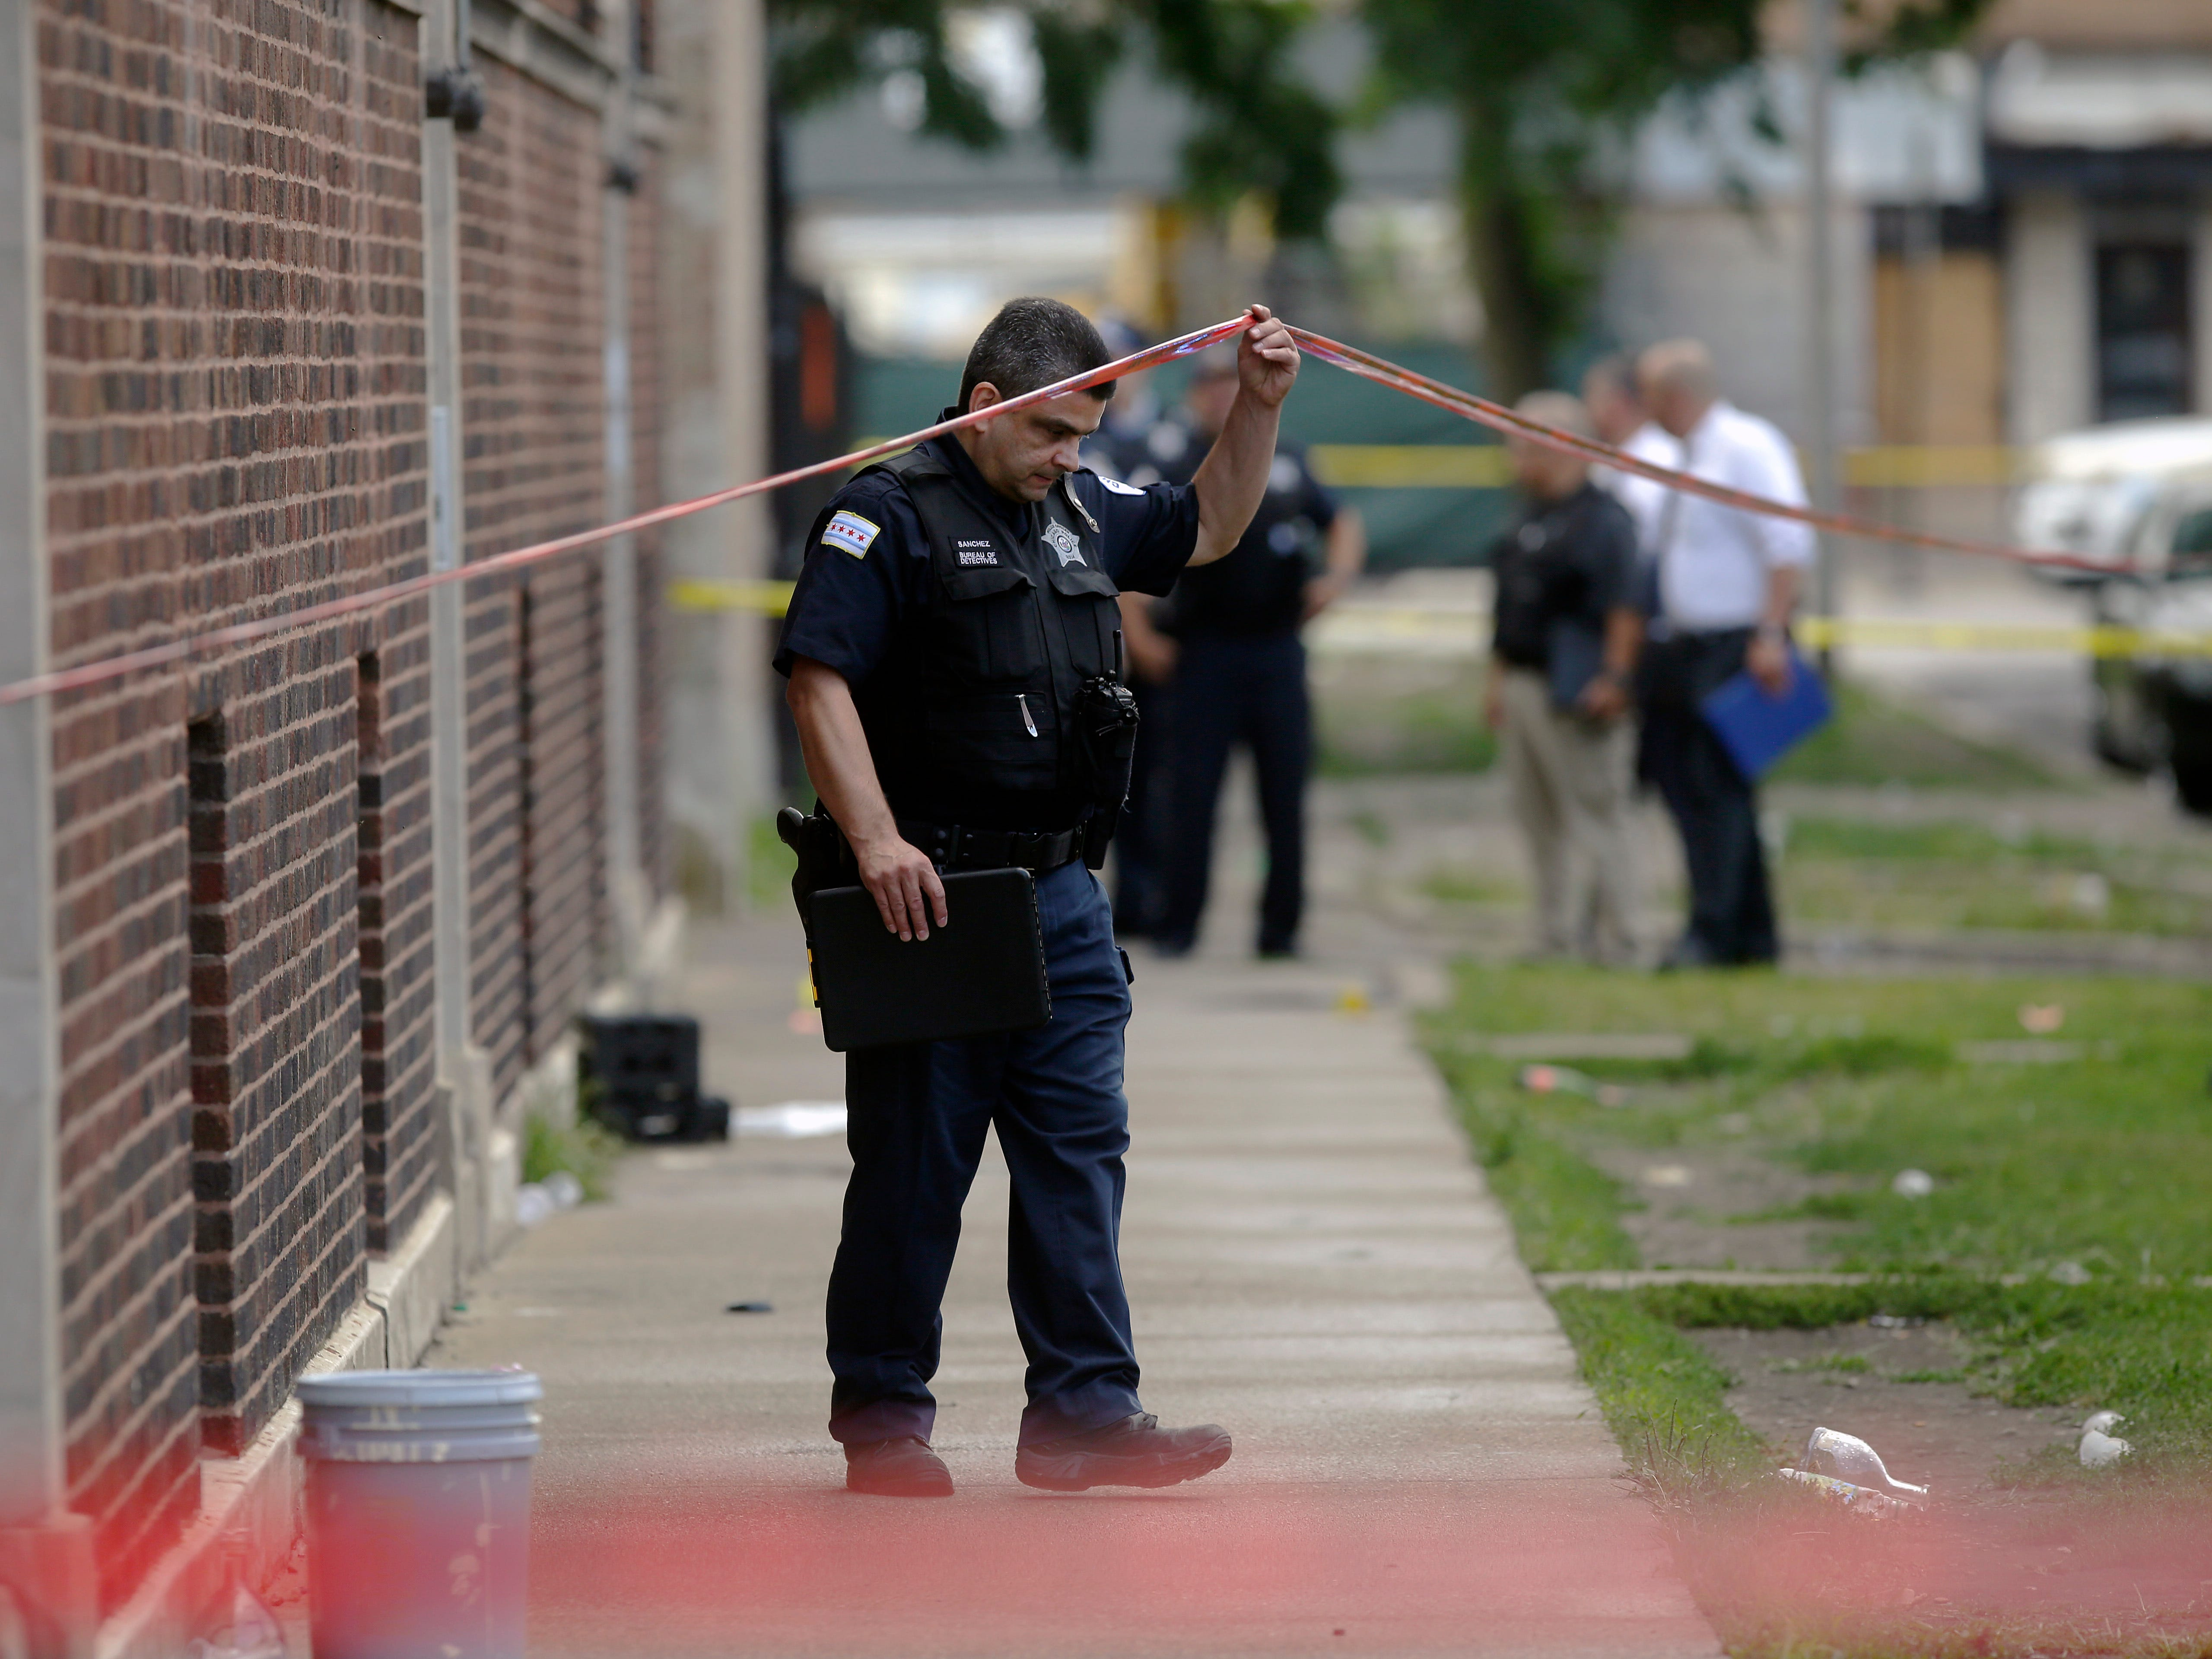 Chicago Police officers and detectives investigate a shooting where multiple people were shot on Sunday, Aug. 5, 2018 in Chicago, IL.